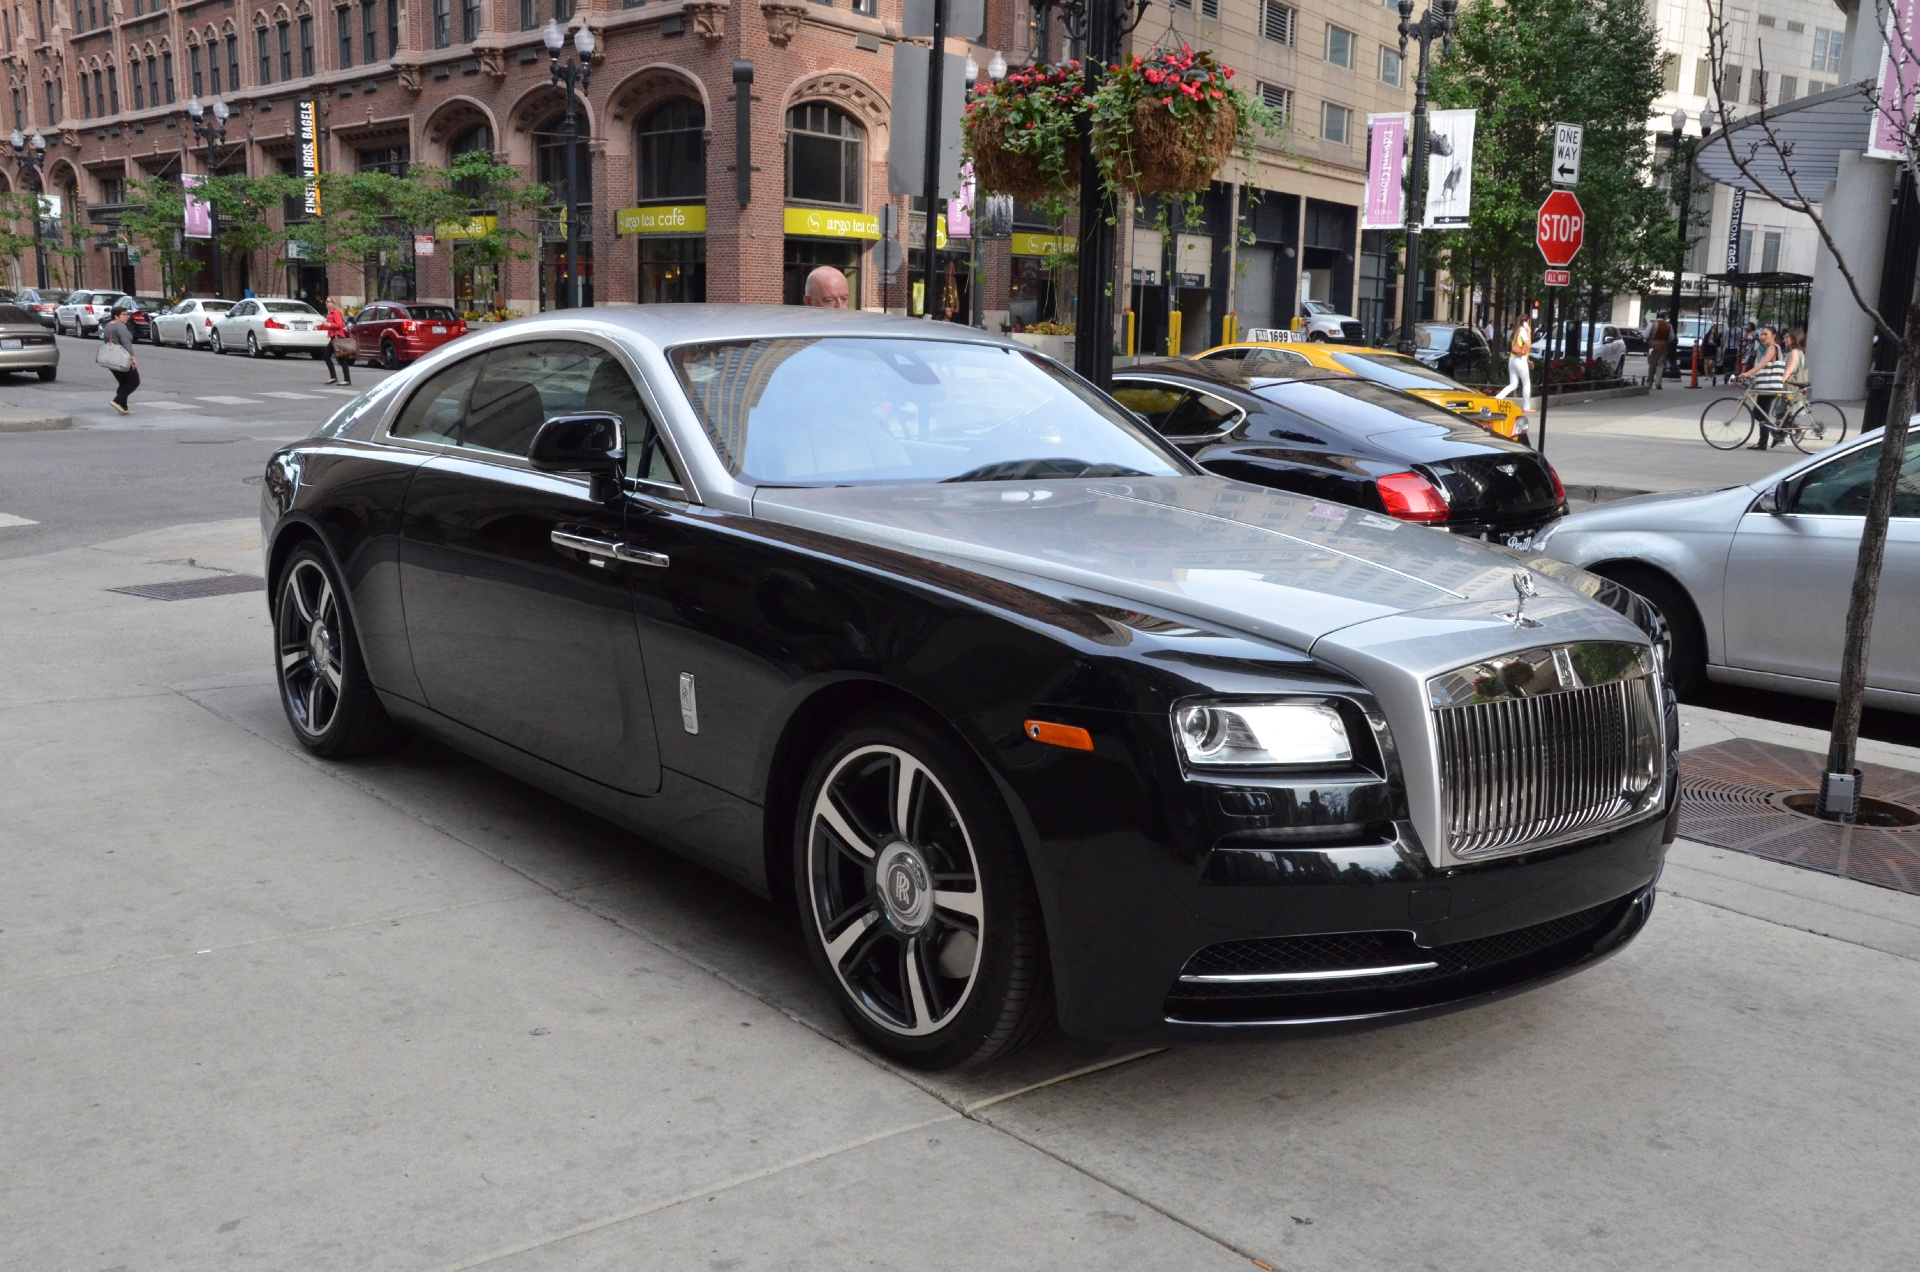 2014 rolls royce wraith stock r142 s for sale near chicago il il rolls royce dealer. Black Bedroom Furniture Sets. Home Design Ideas